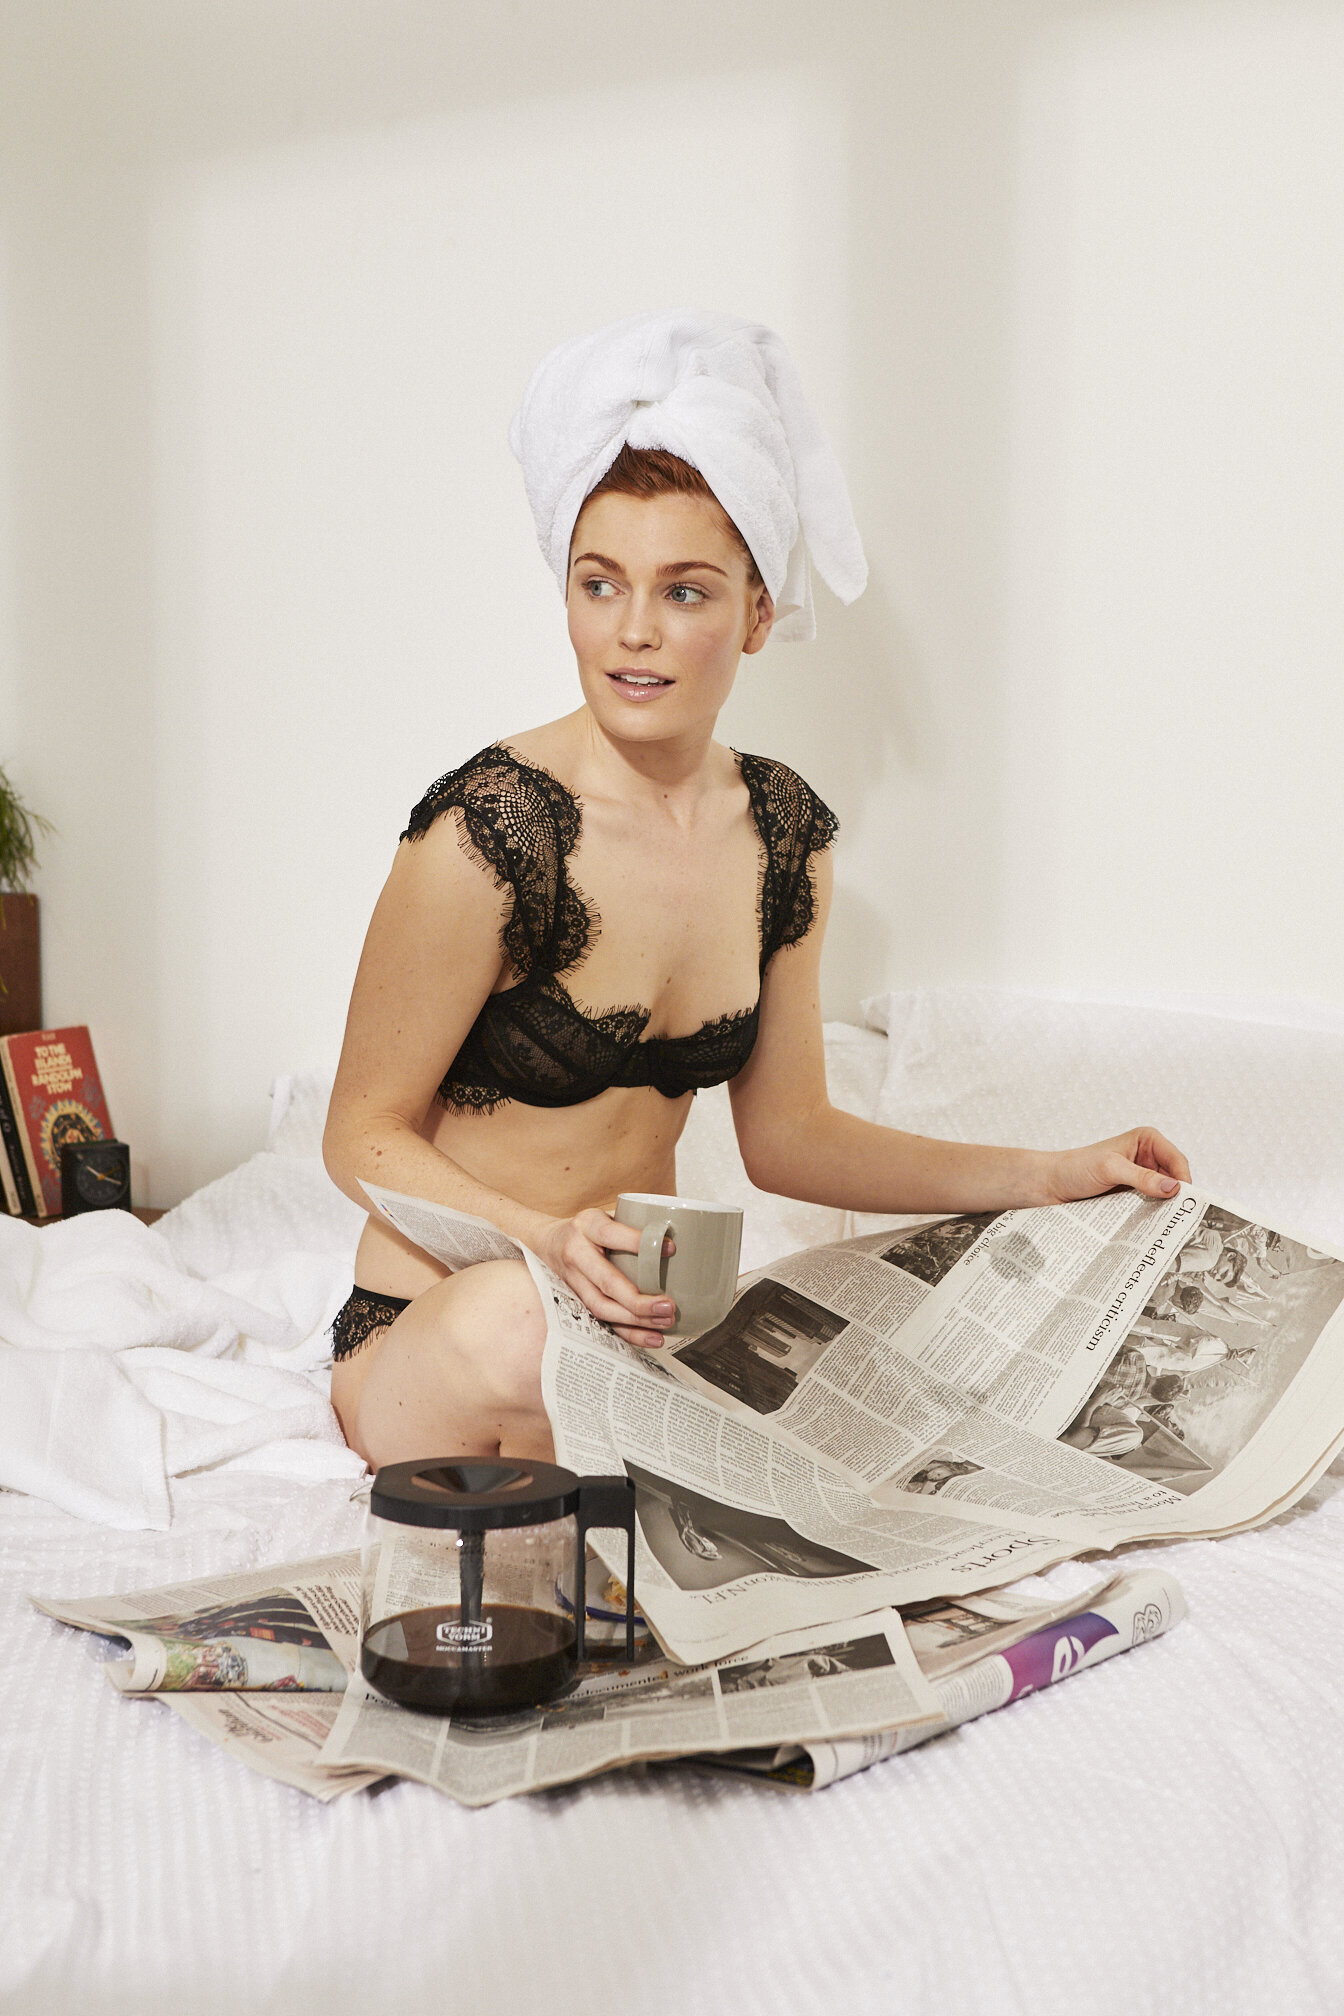 lingerie-bra-knickers-fashion-bedroom-nude-underwear-campaign-advertising-photography-nude-vintage-style-two-piece-studio-loft-new-york-lifestyle-campaign-nick-warner-london